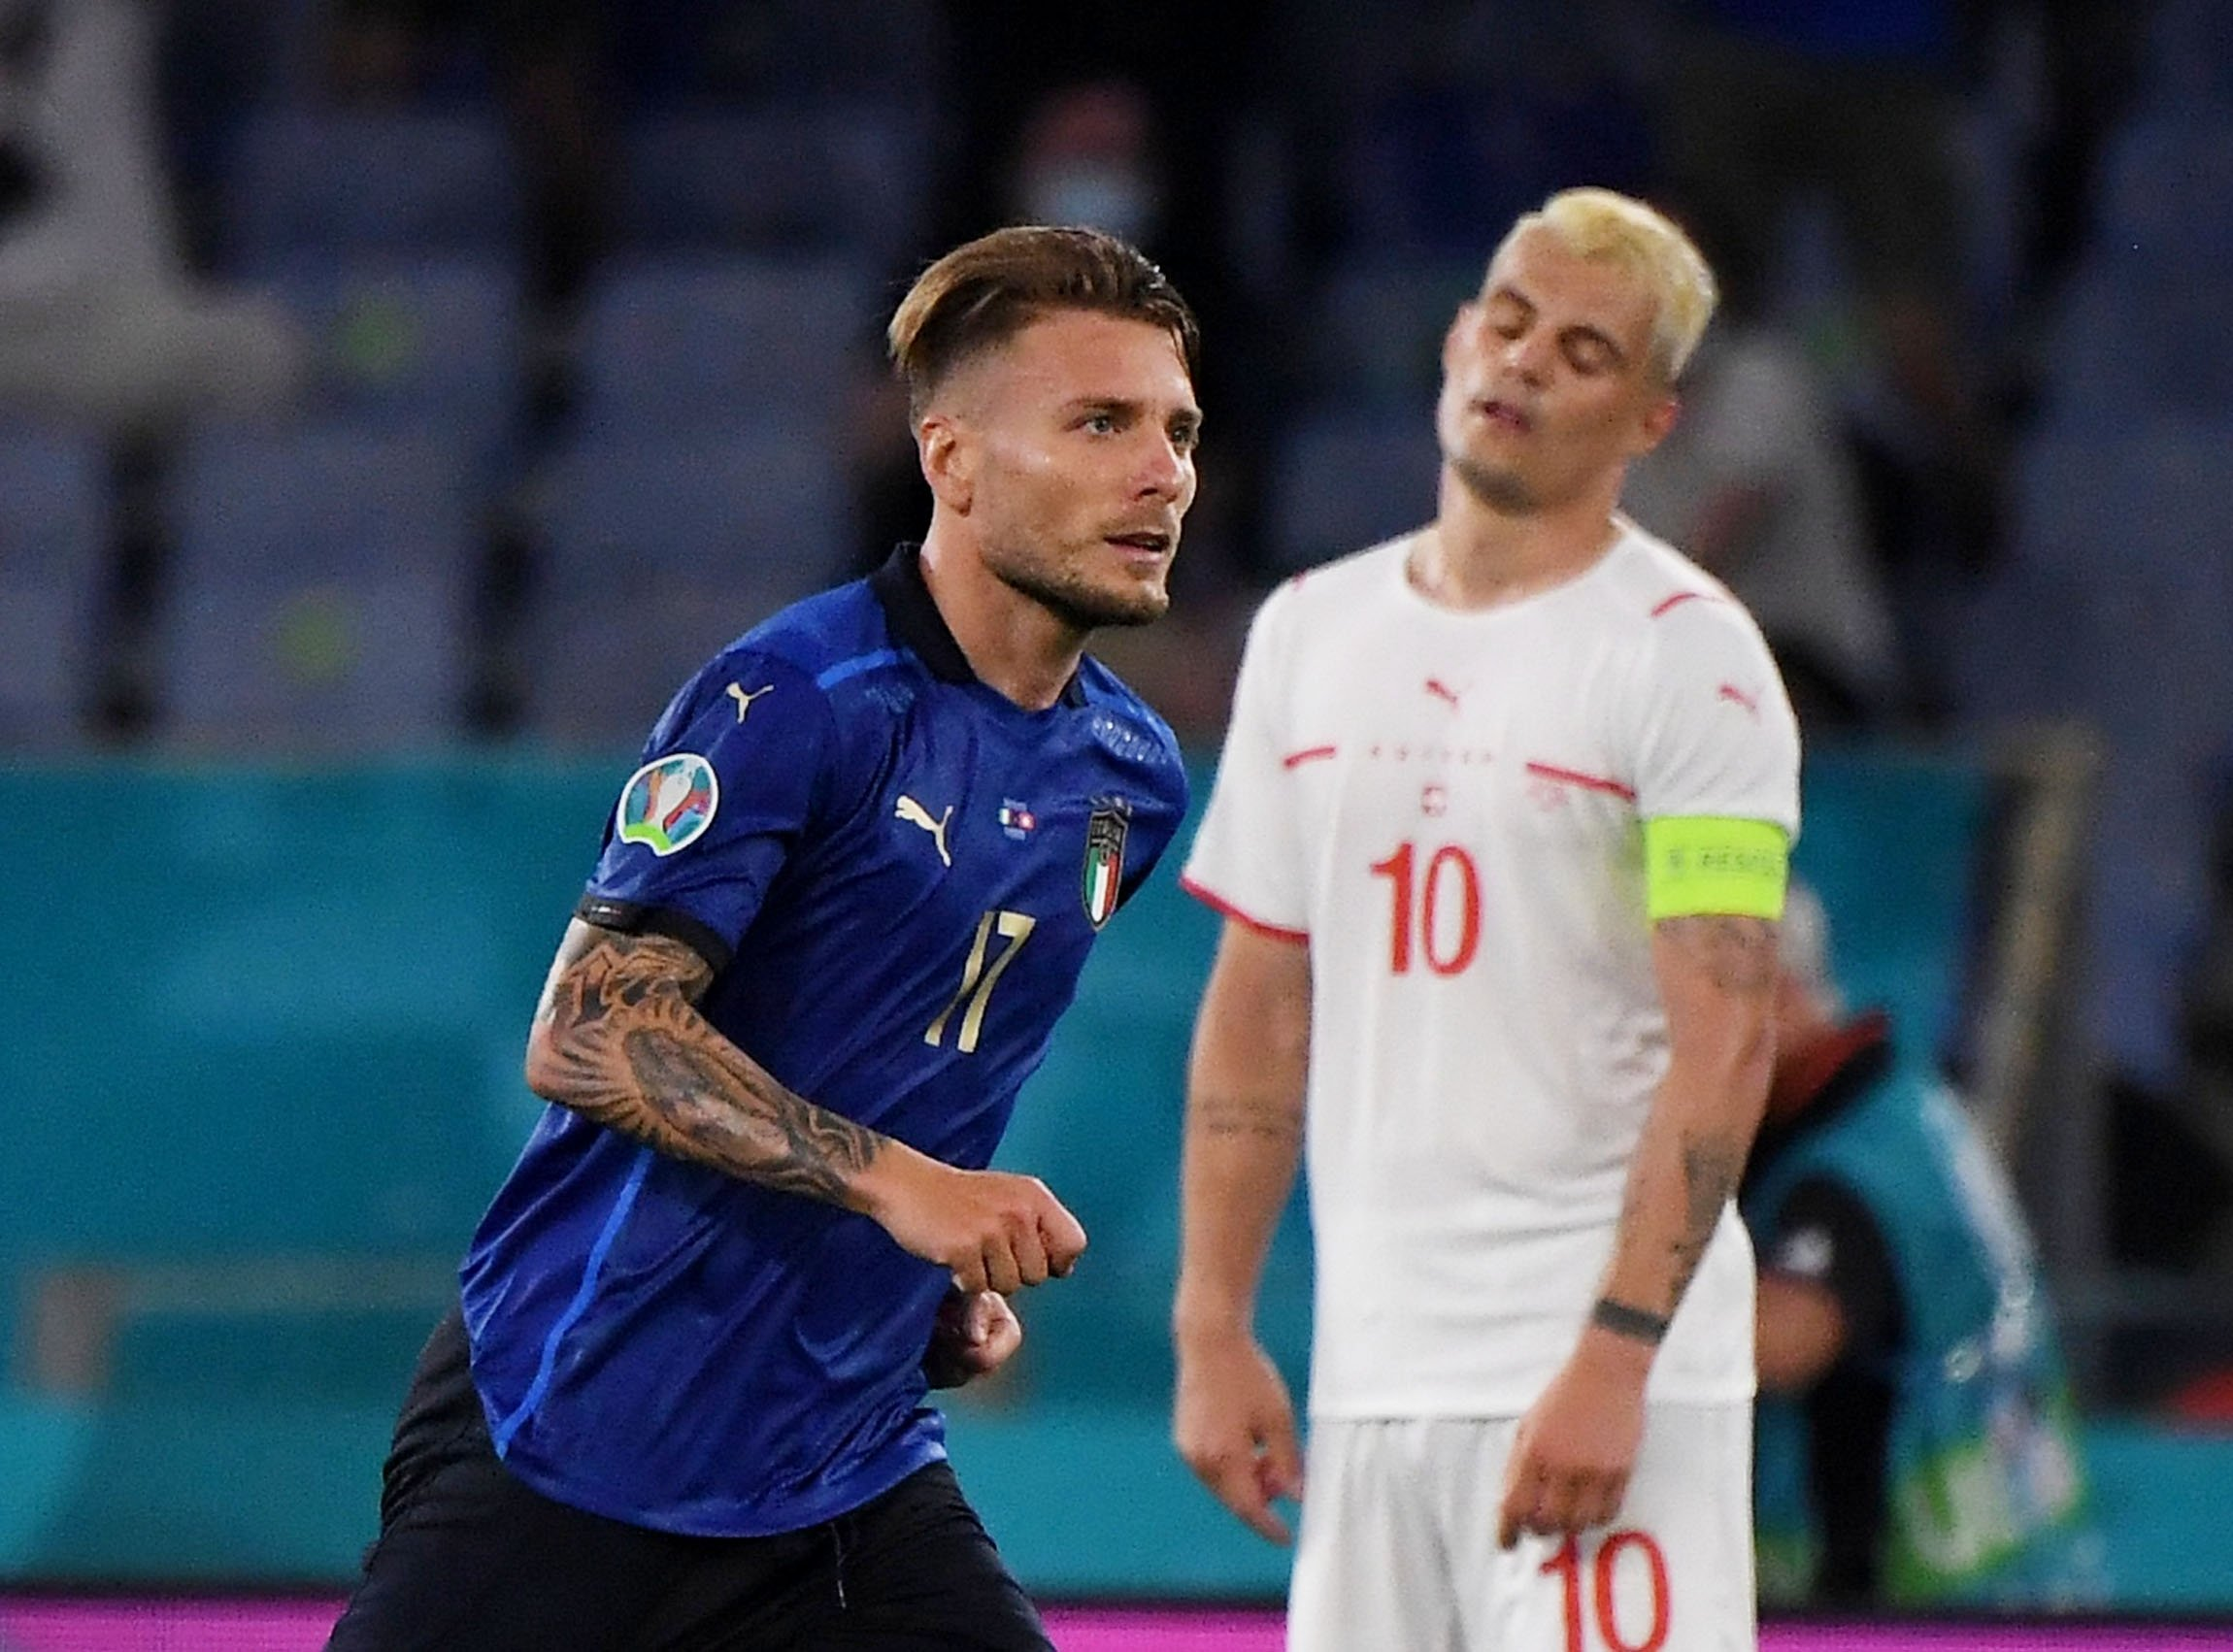 Italy First Team to Qualify for European Championship Knockout Stage